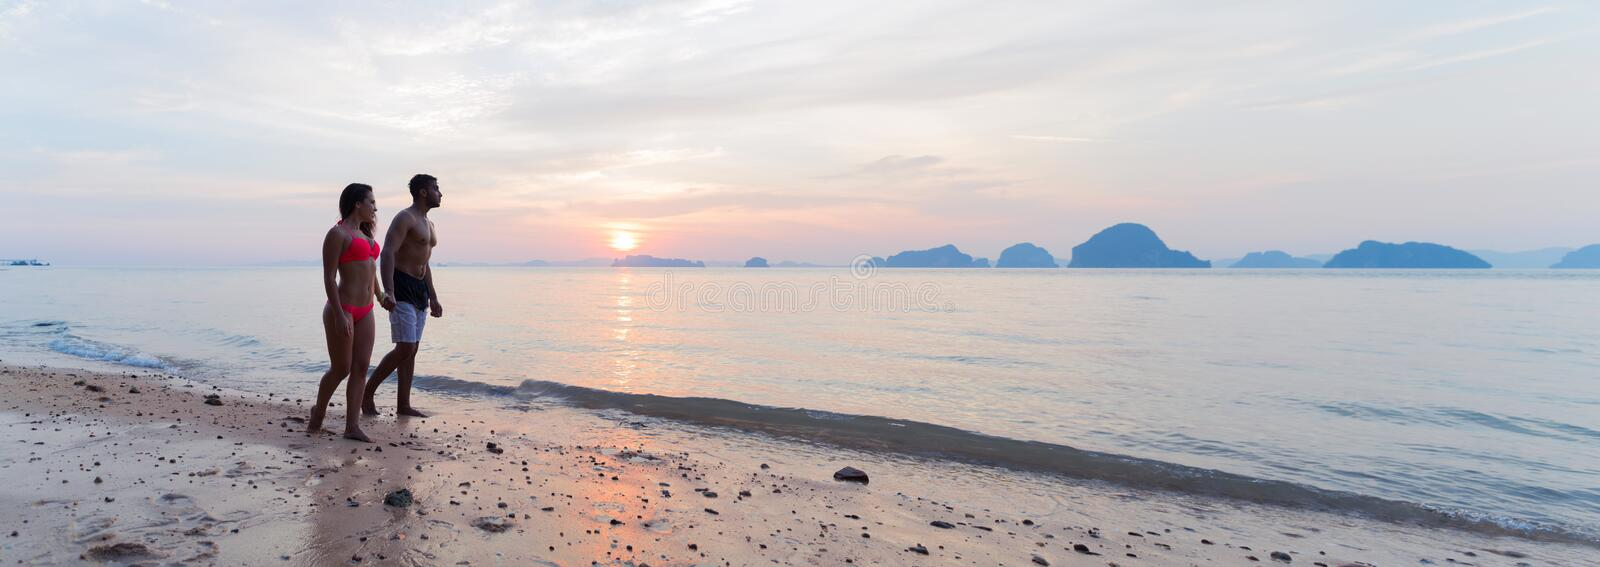 Couple Holding Hands Walking On Beach At Sunset, Young Tourist Man And Woman On Sea Holiday stock photos